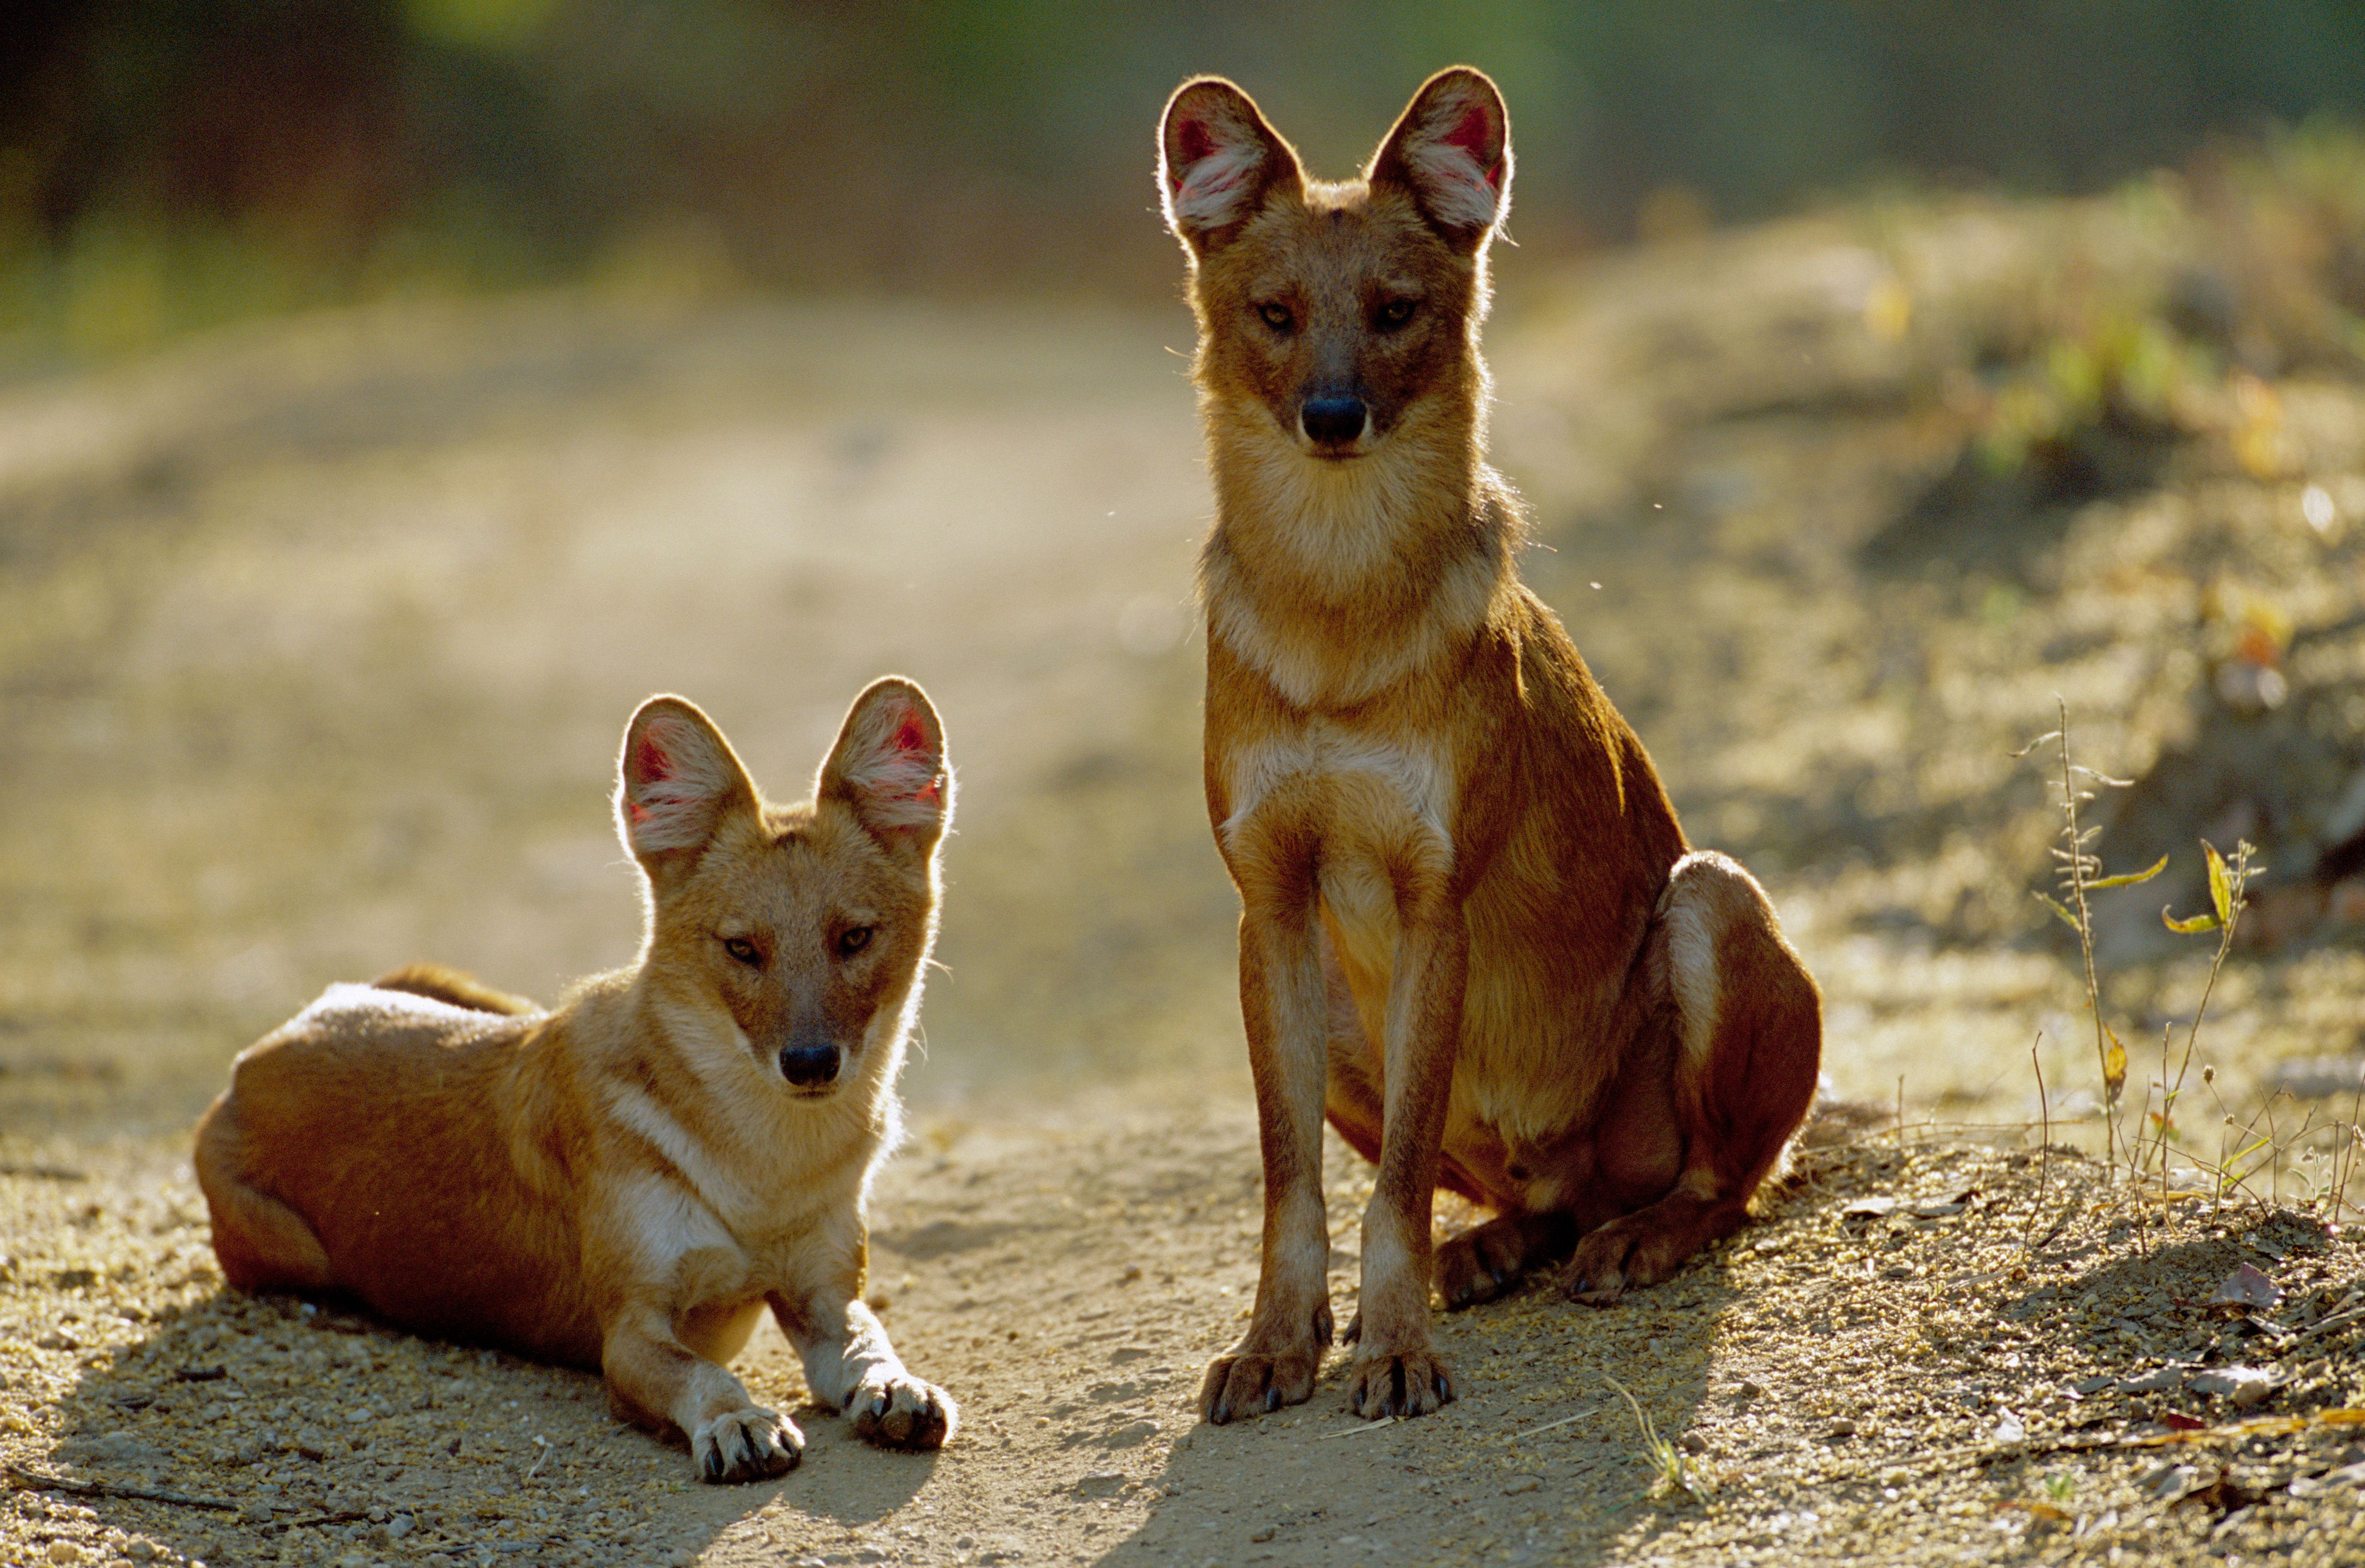 dhole animal coloring pages. The dhole  Cuon alpinus is also called the Asiatic wild dog or Indian